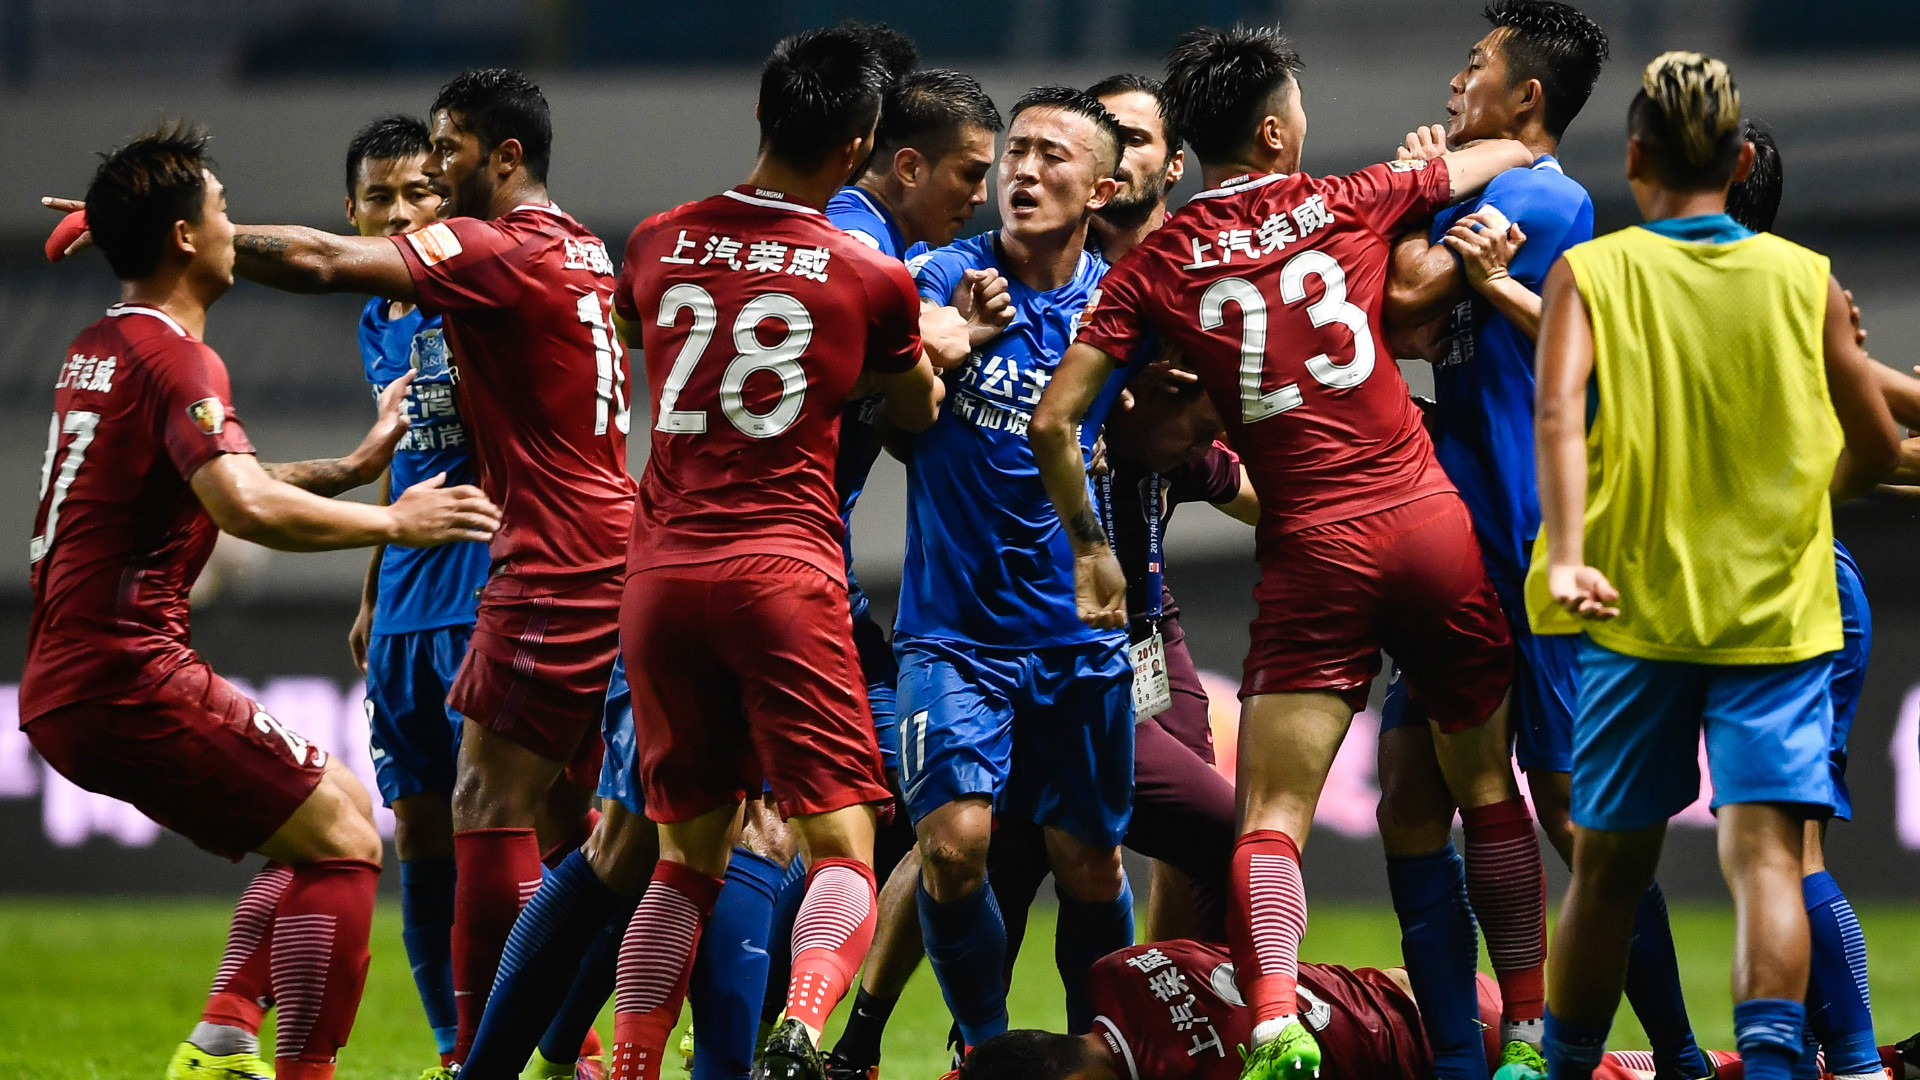 Oscar in a brawl in the Chinese Super League